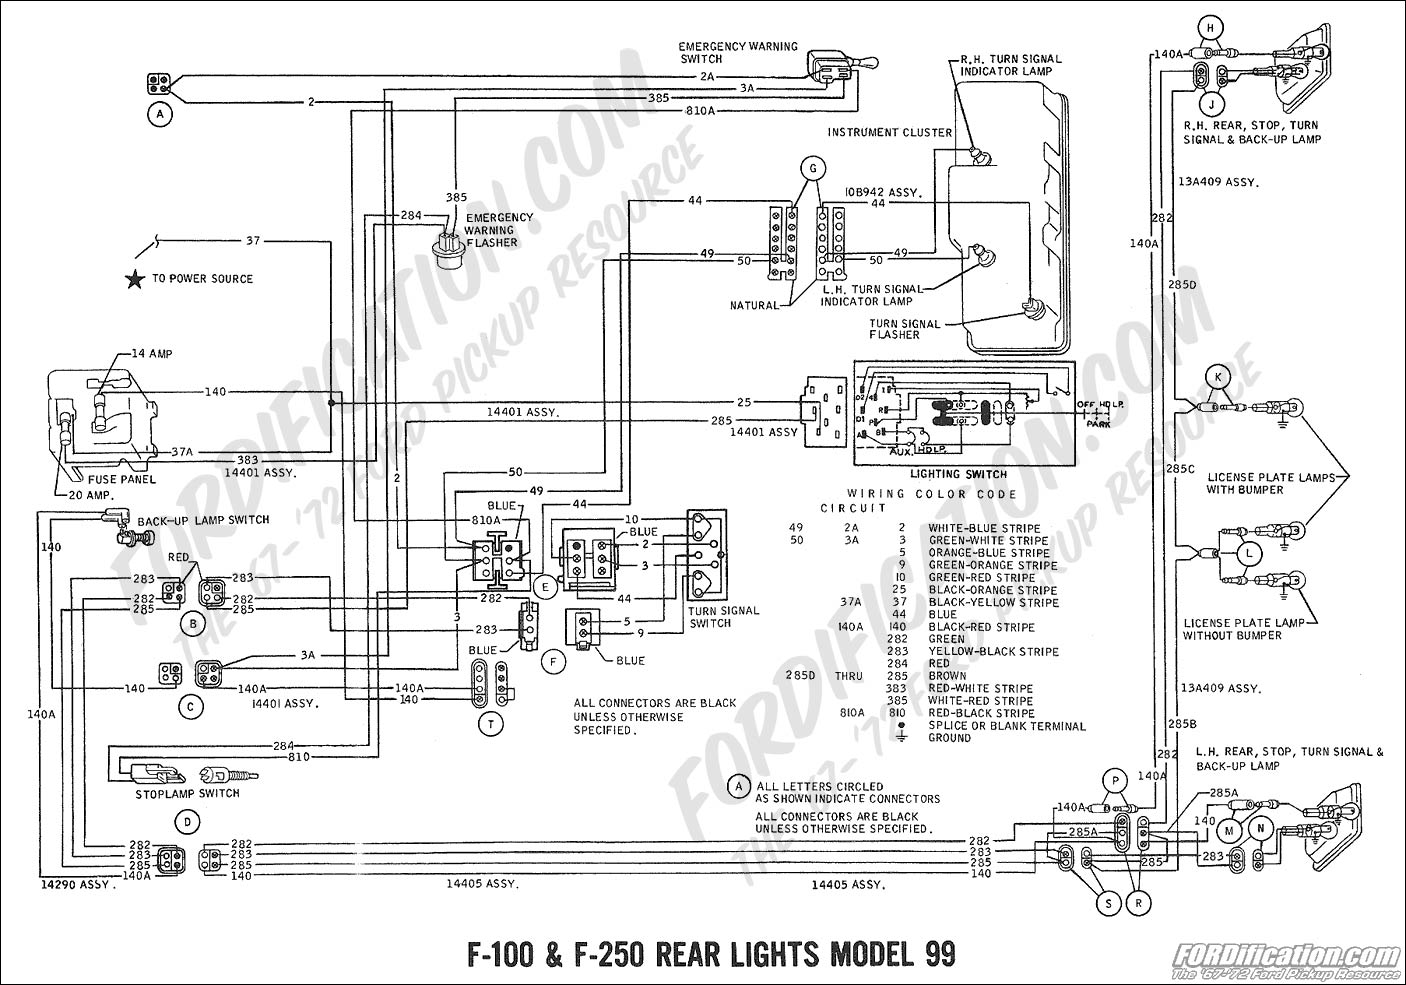 honda crv ecu wiring diagram cx lighting control panel 99 lexus gs300 engine